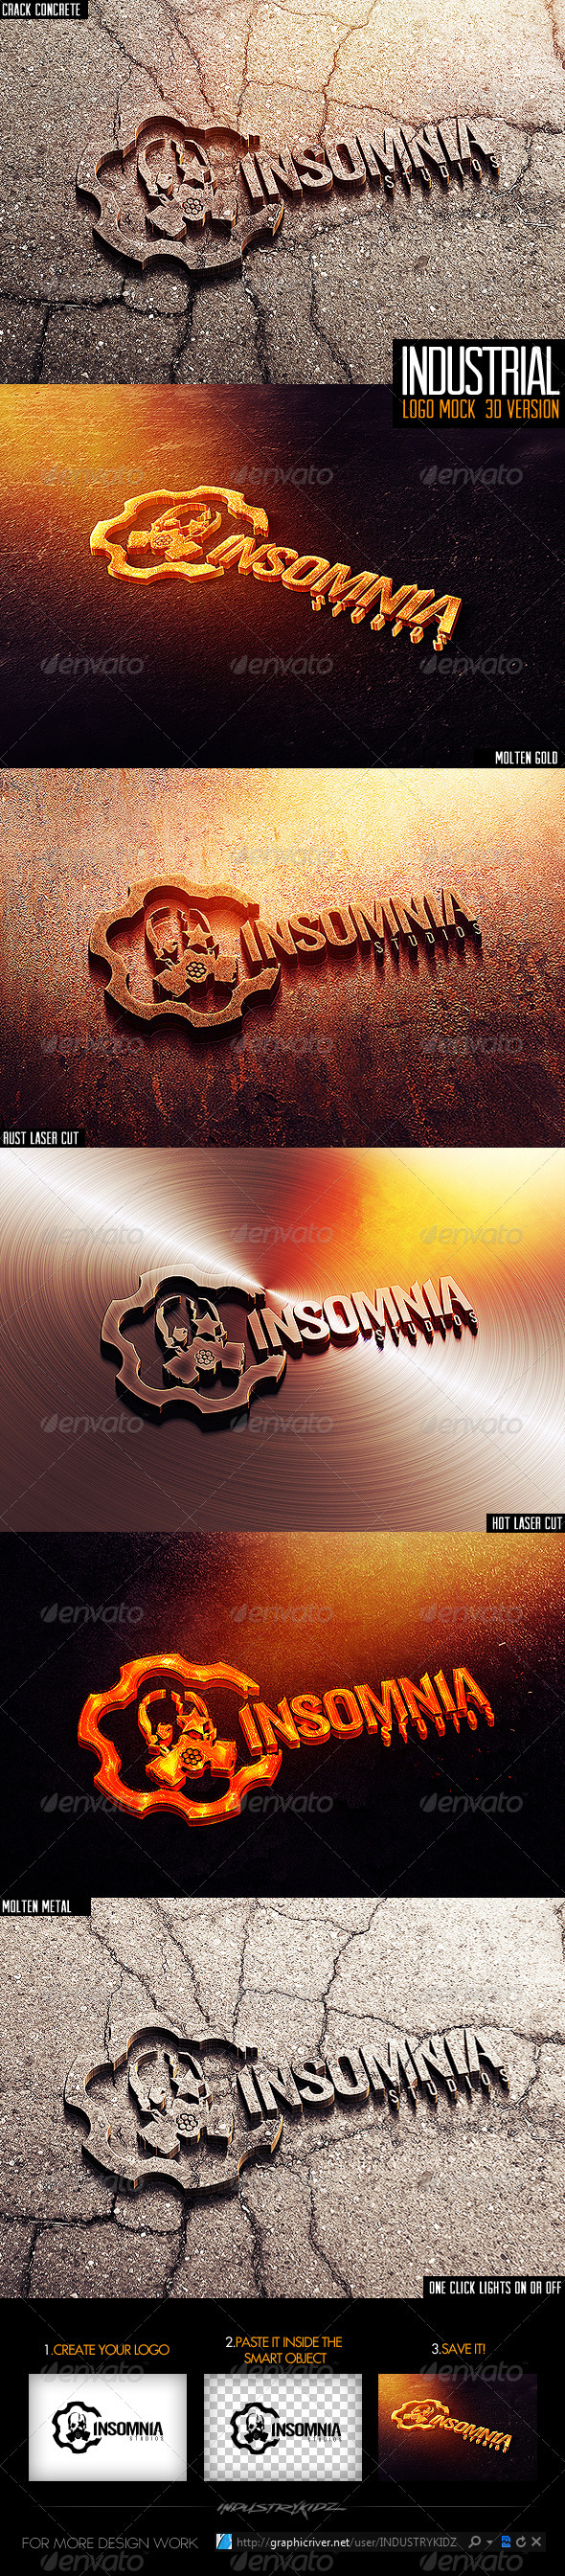 Industrial Photorealistic 3D Logo Mock-Up  - Logo Product Mock-Ups